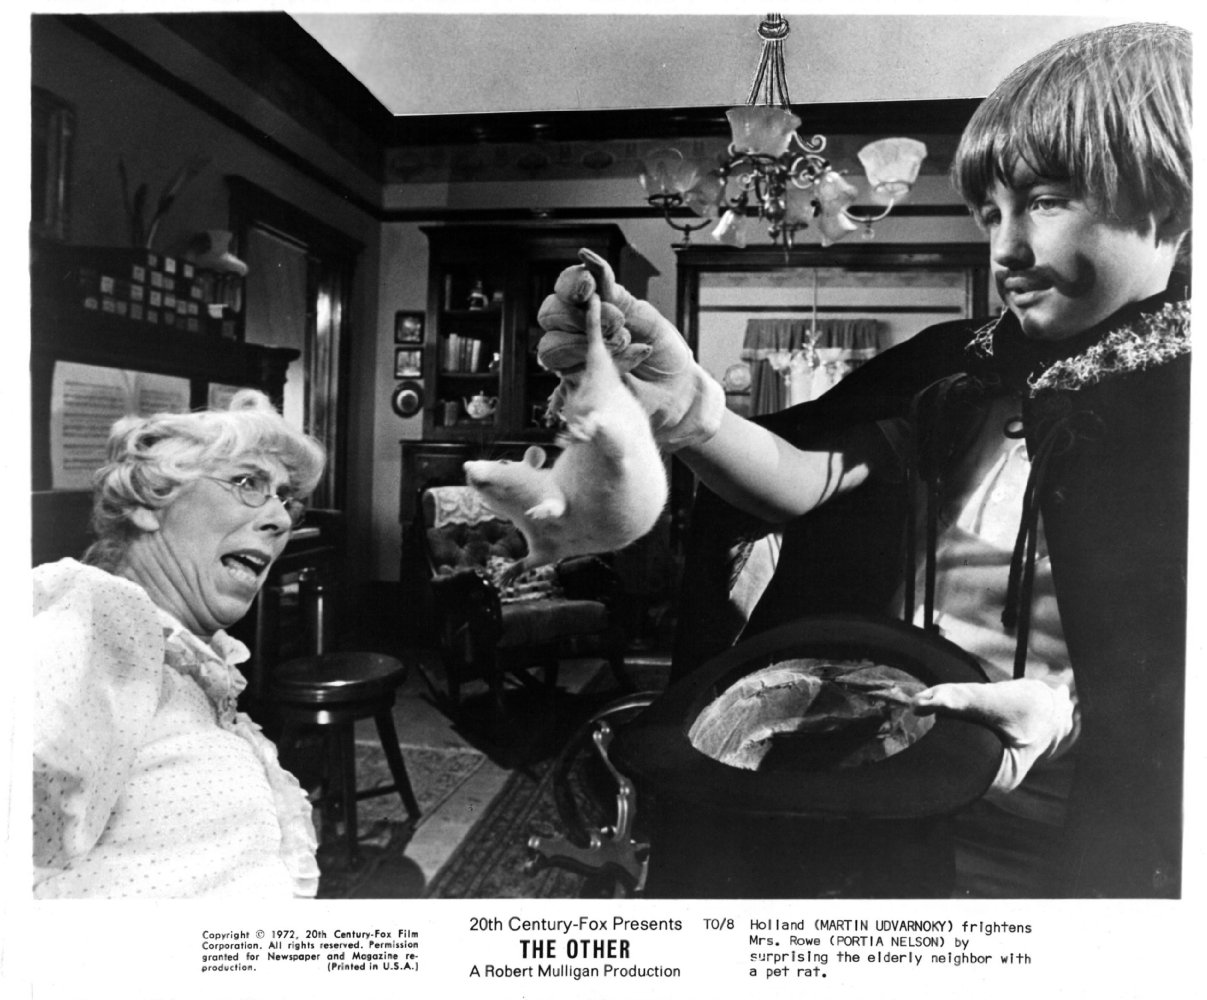 The Other (1972)